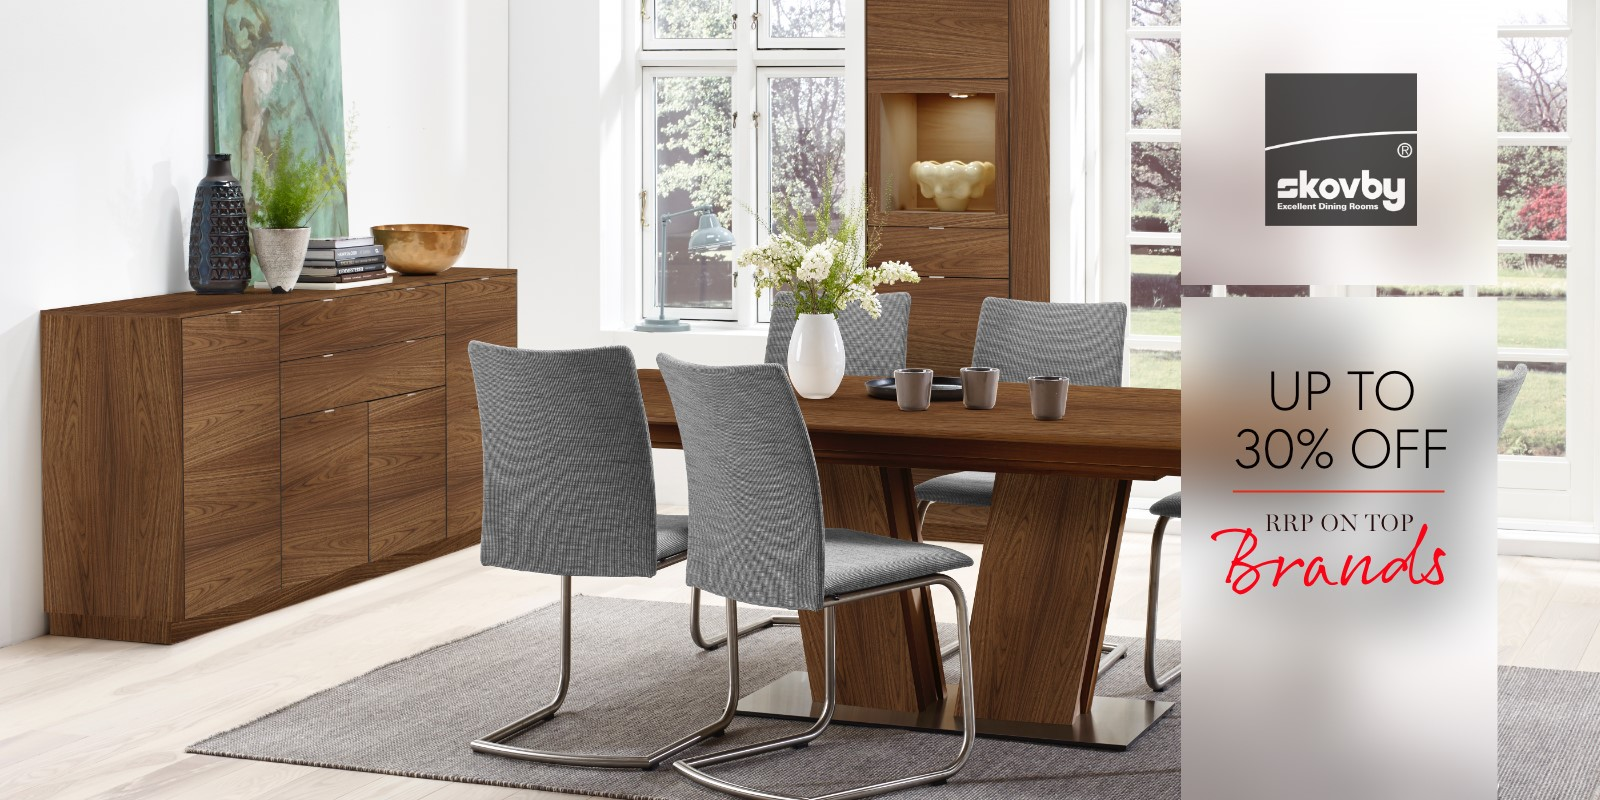 sofas dining furniture bedroom furniture home accessories